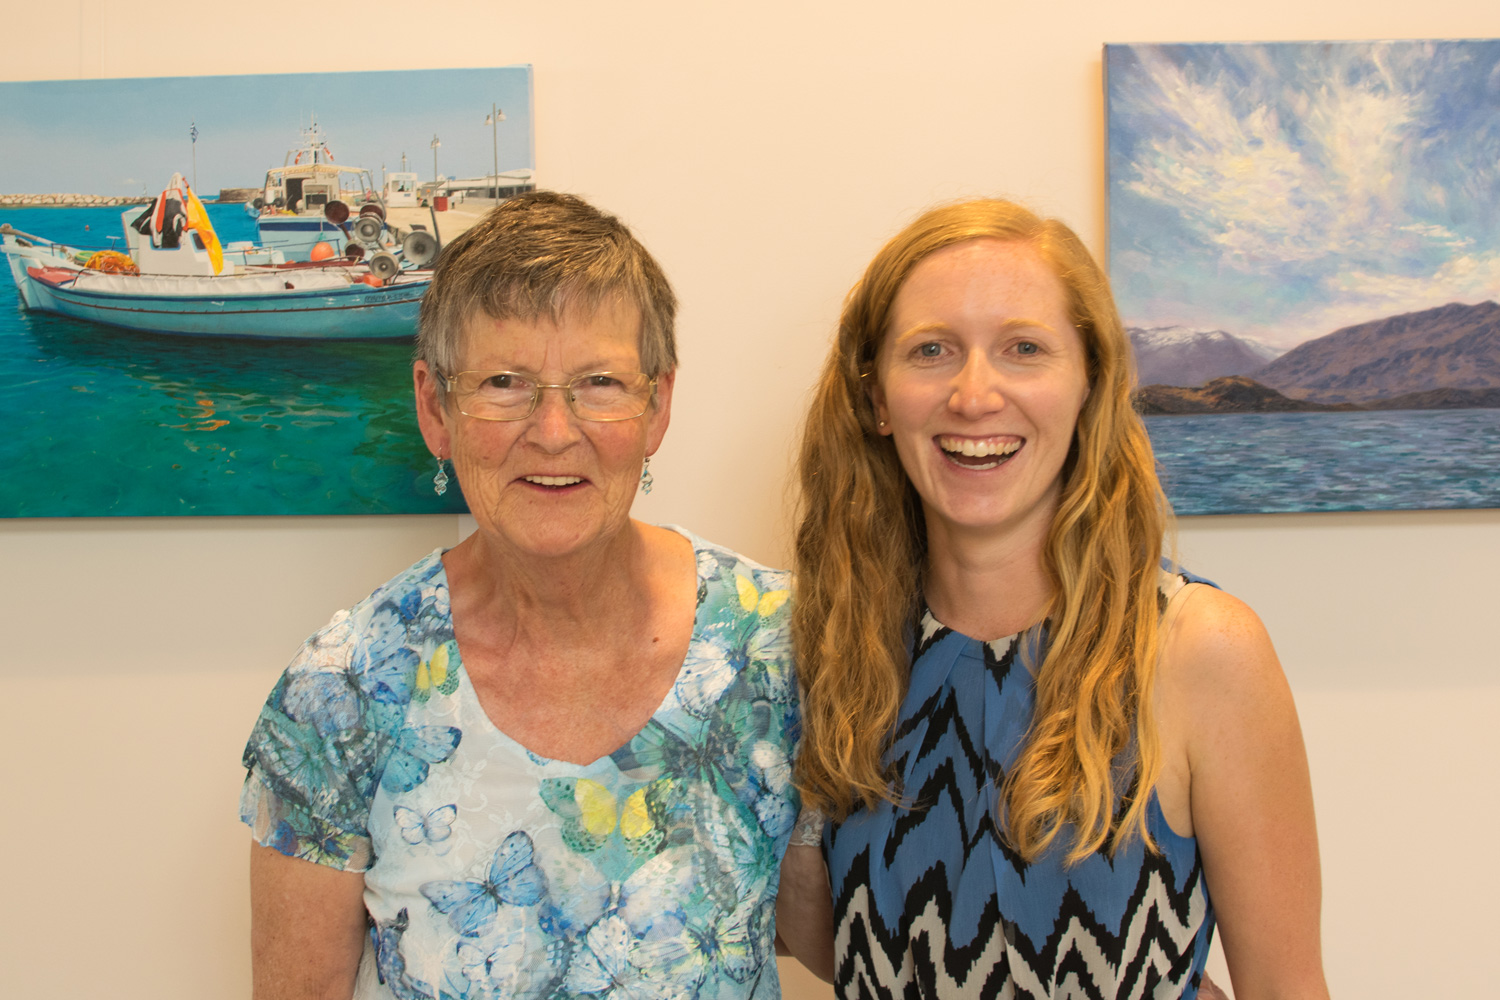 Lorraine and I colour matching with the paintings behind us.